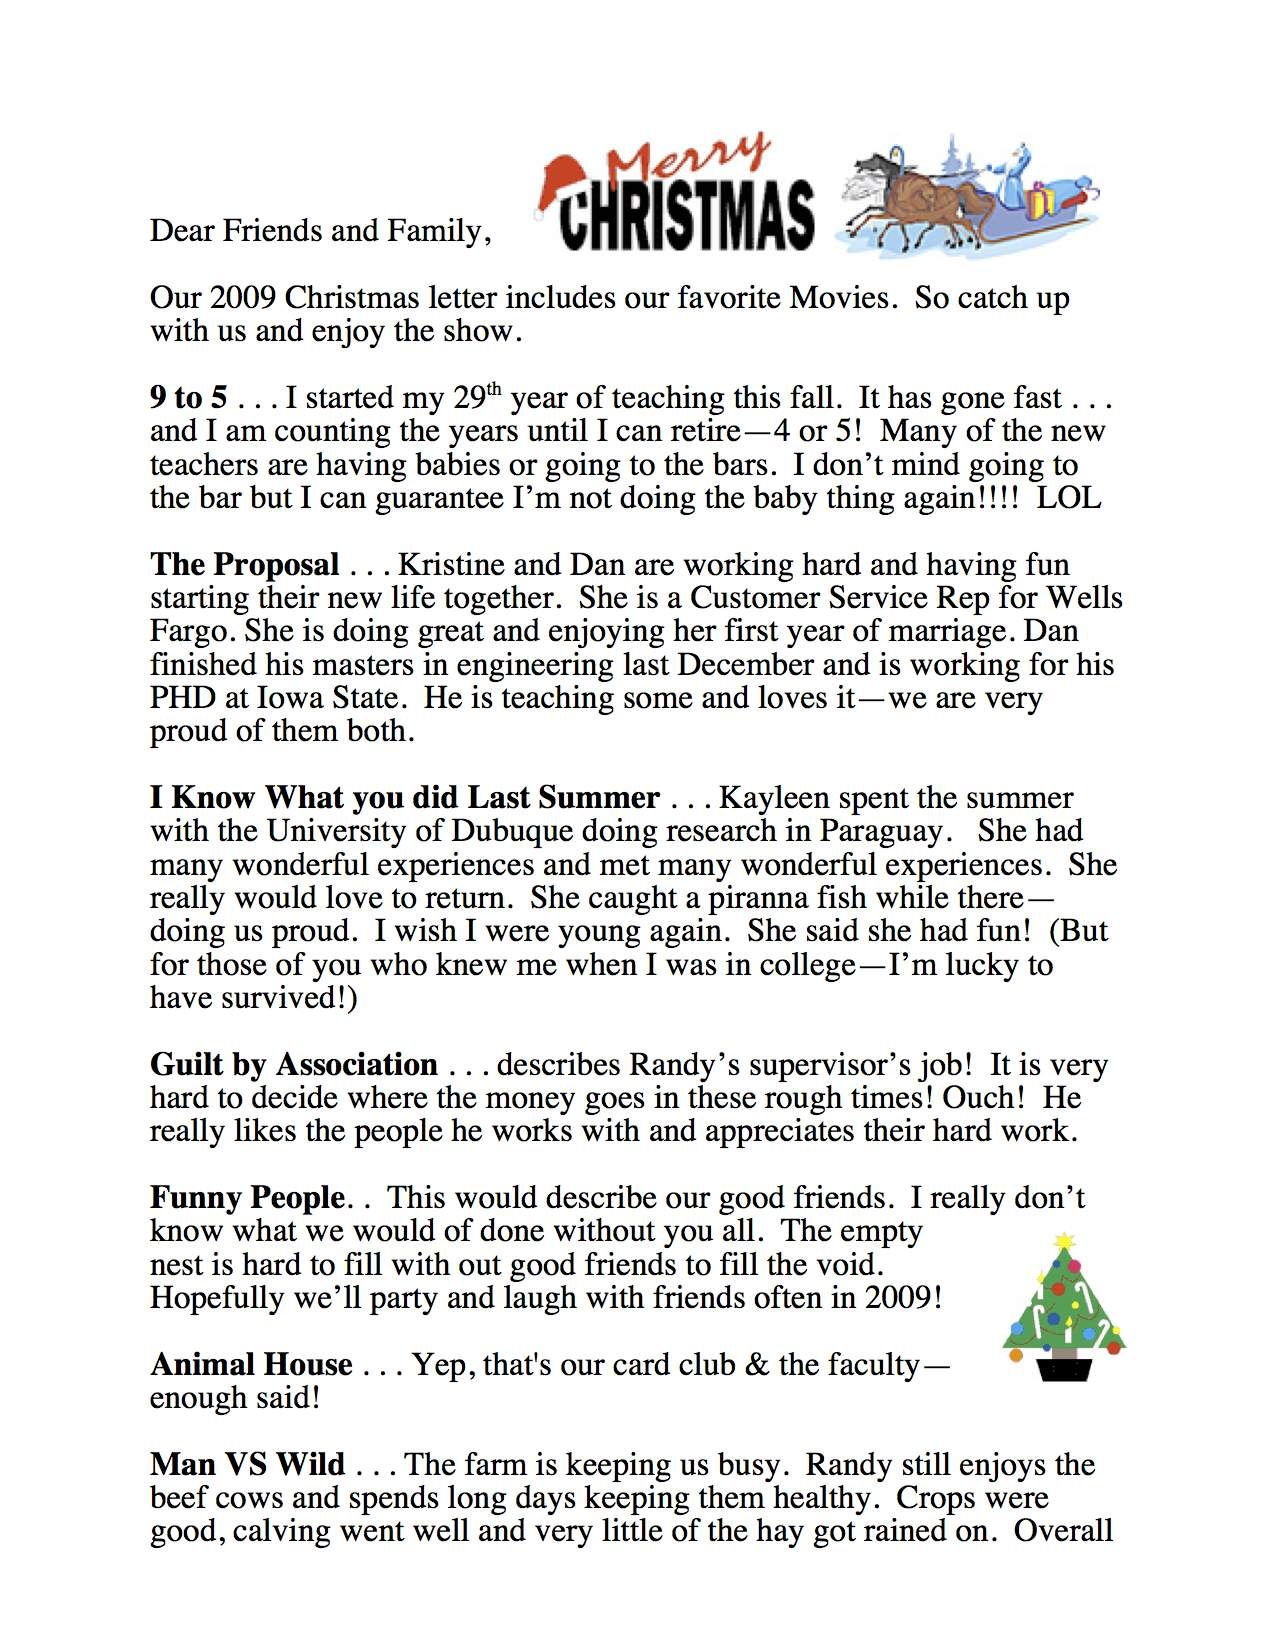 Pin by Sharon Keehner on Christmas Letter Ideas Pinterest